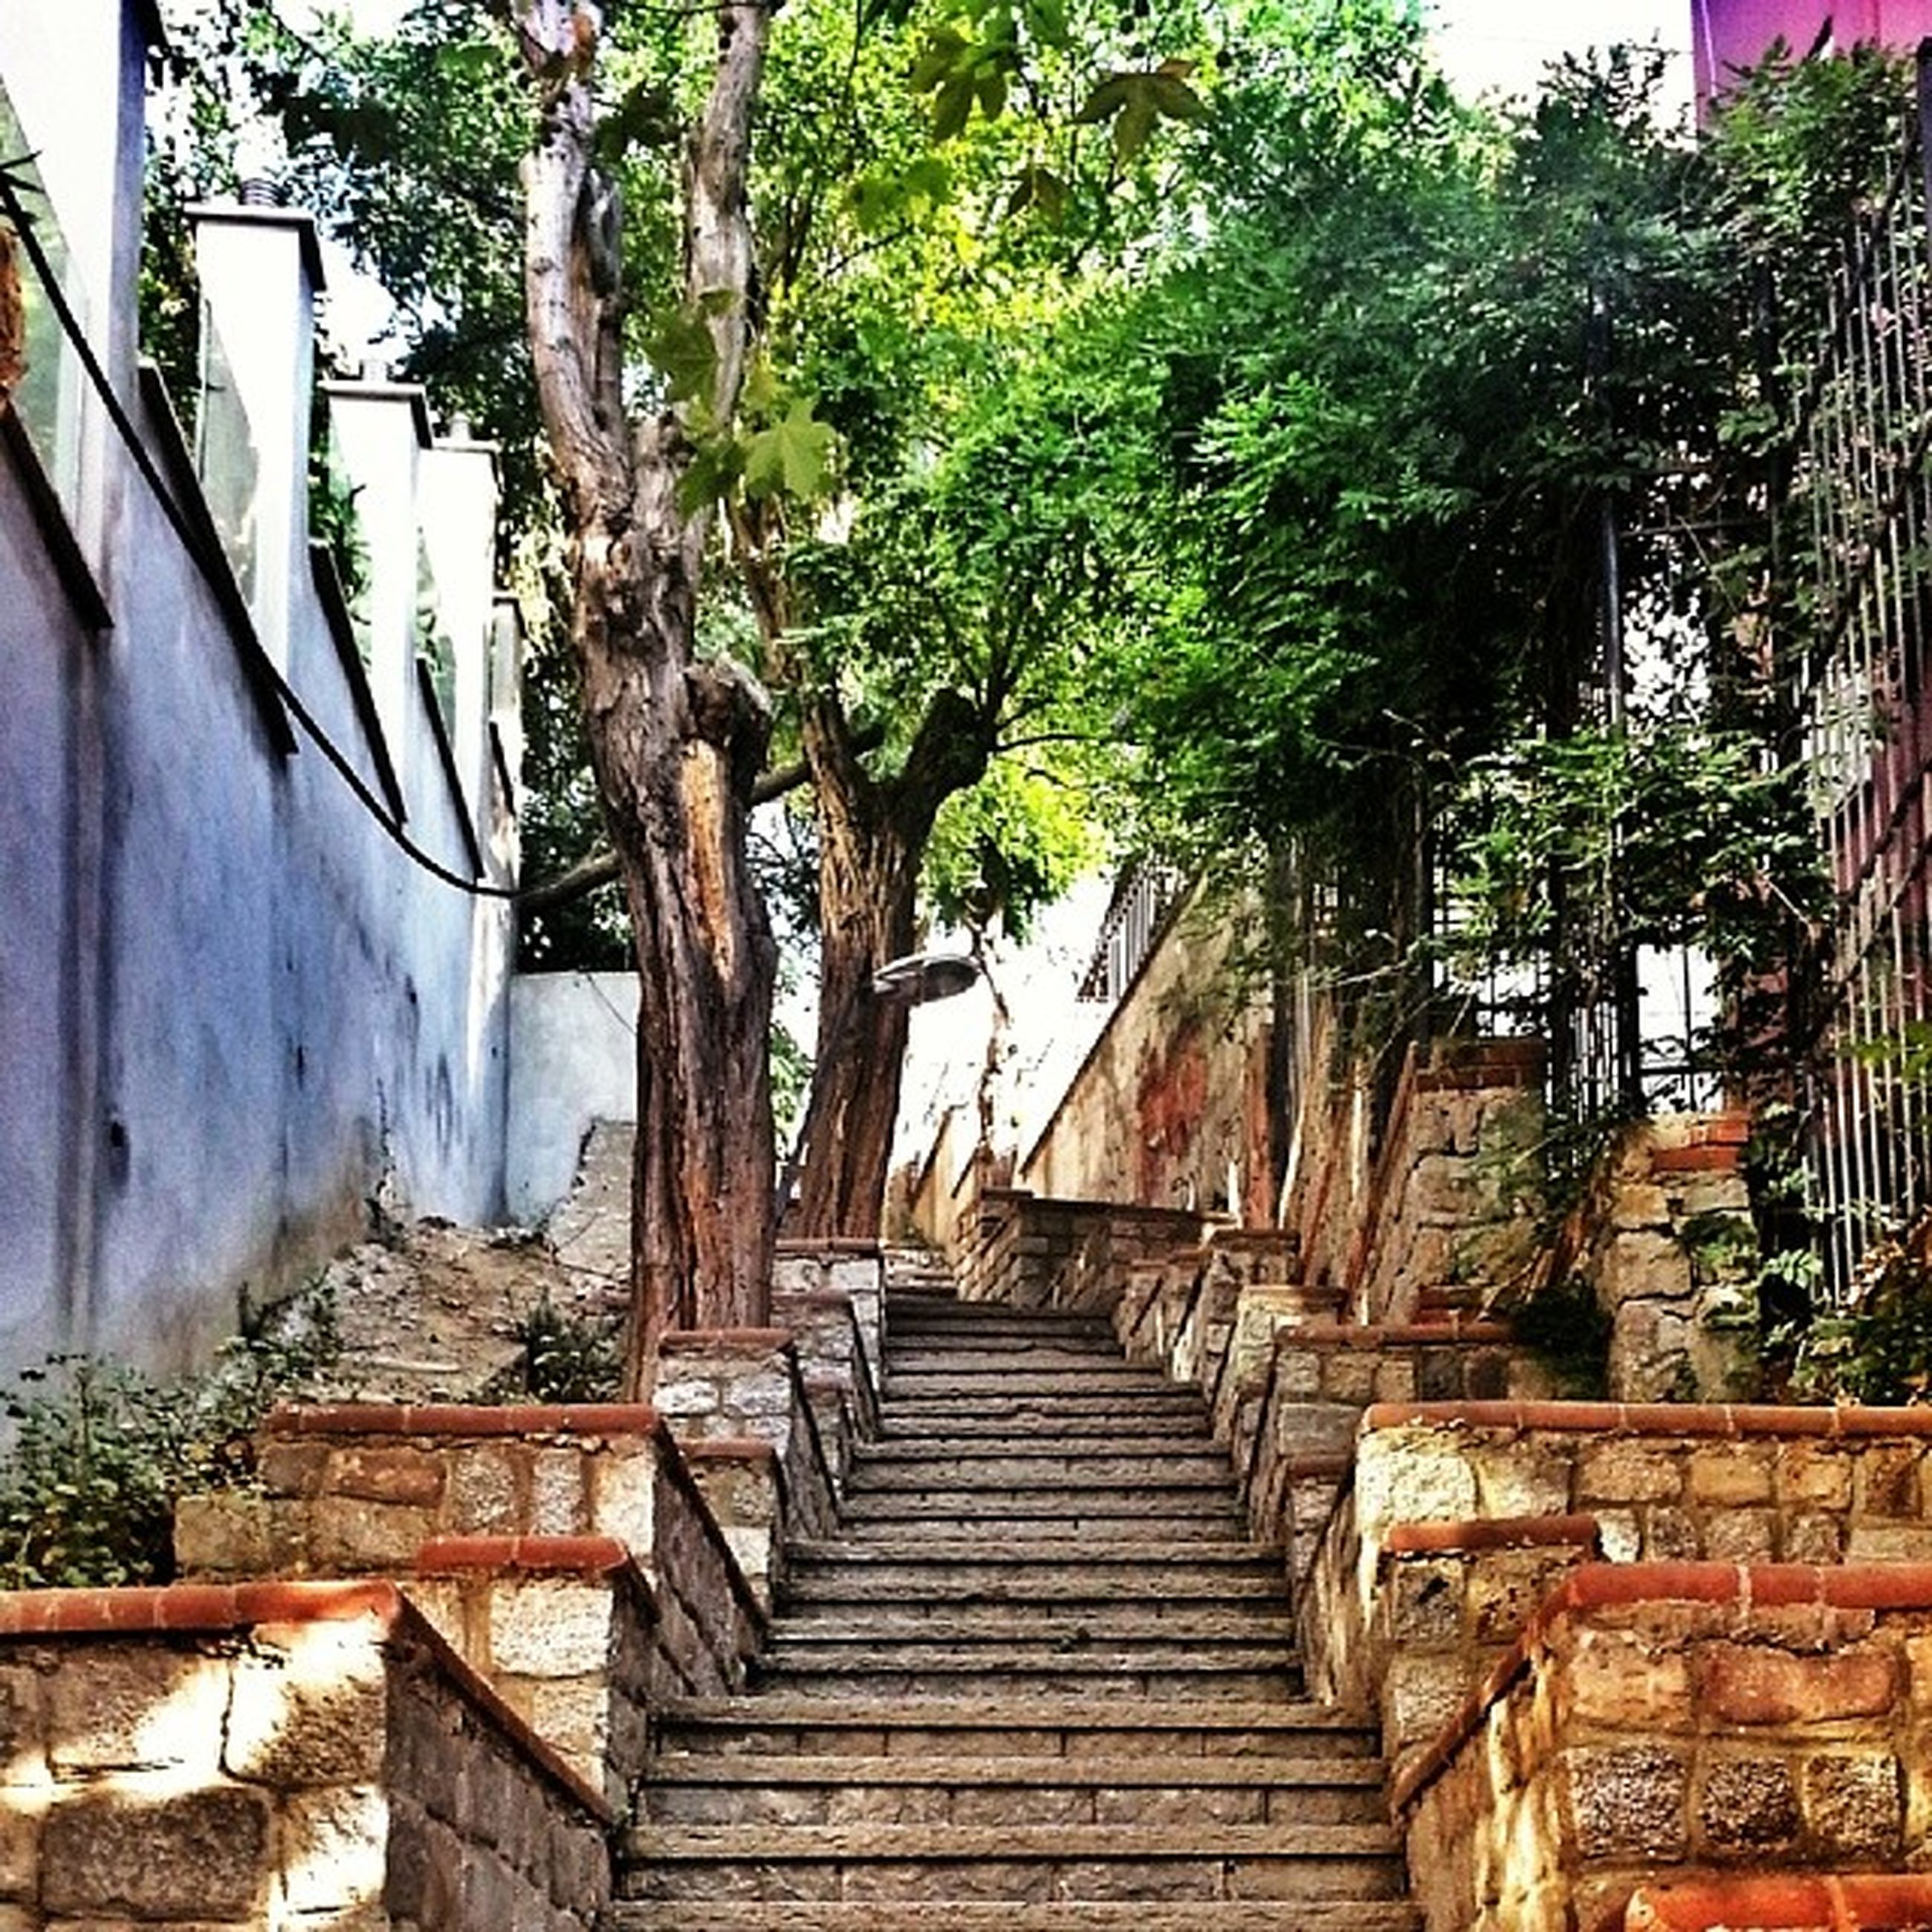 built structure, architecture, building exterior, the way forward, tree, house, steps, residential structure, day, narrow, wall - building feature, diminishing perspective, residential building, outdoors, graffiti, no people, wall, growth, steps and staircases, building